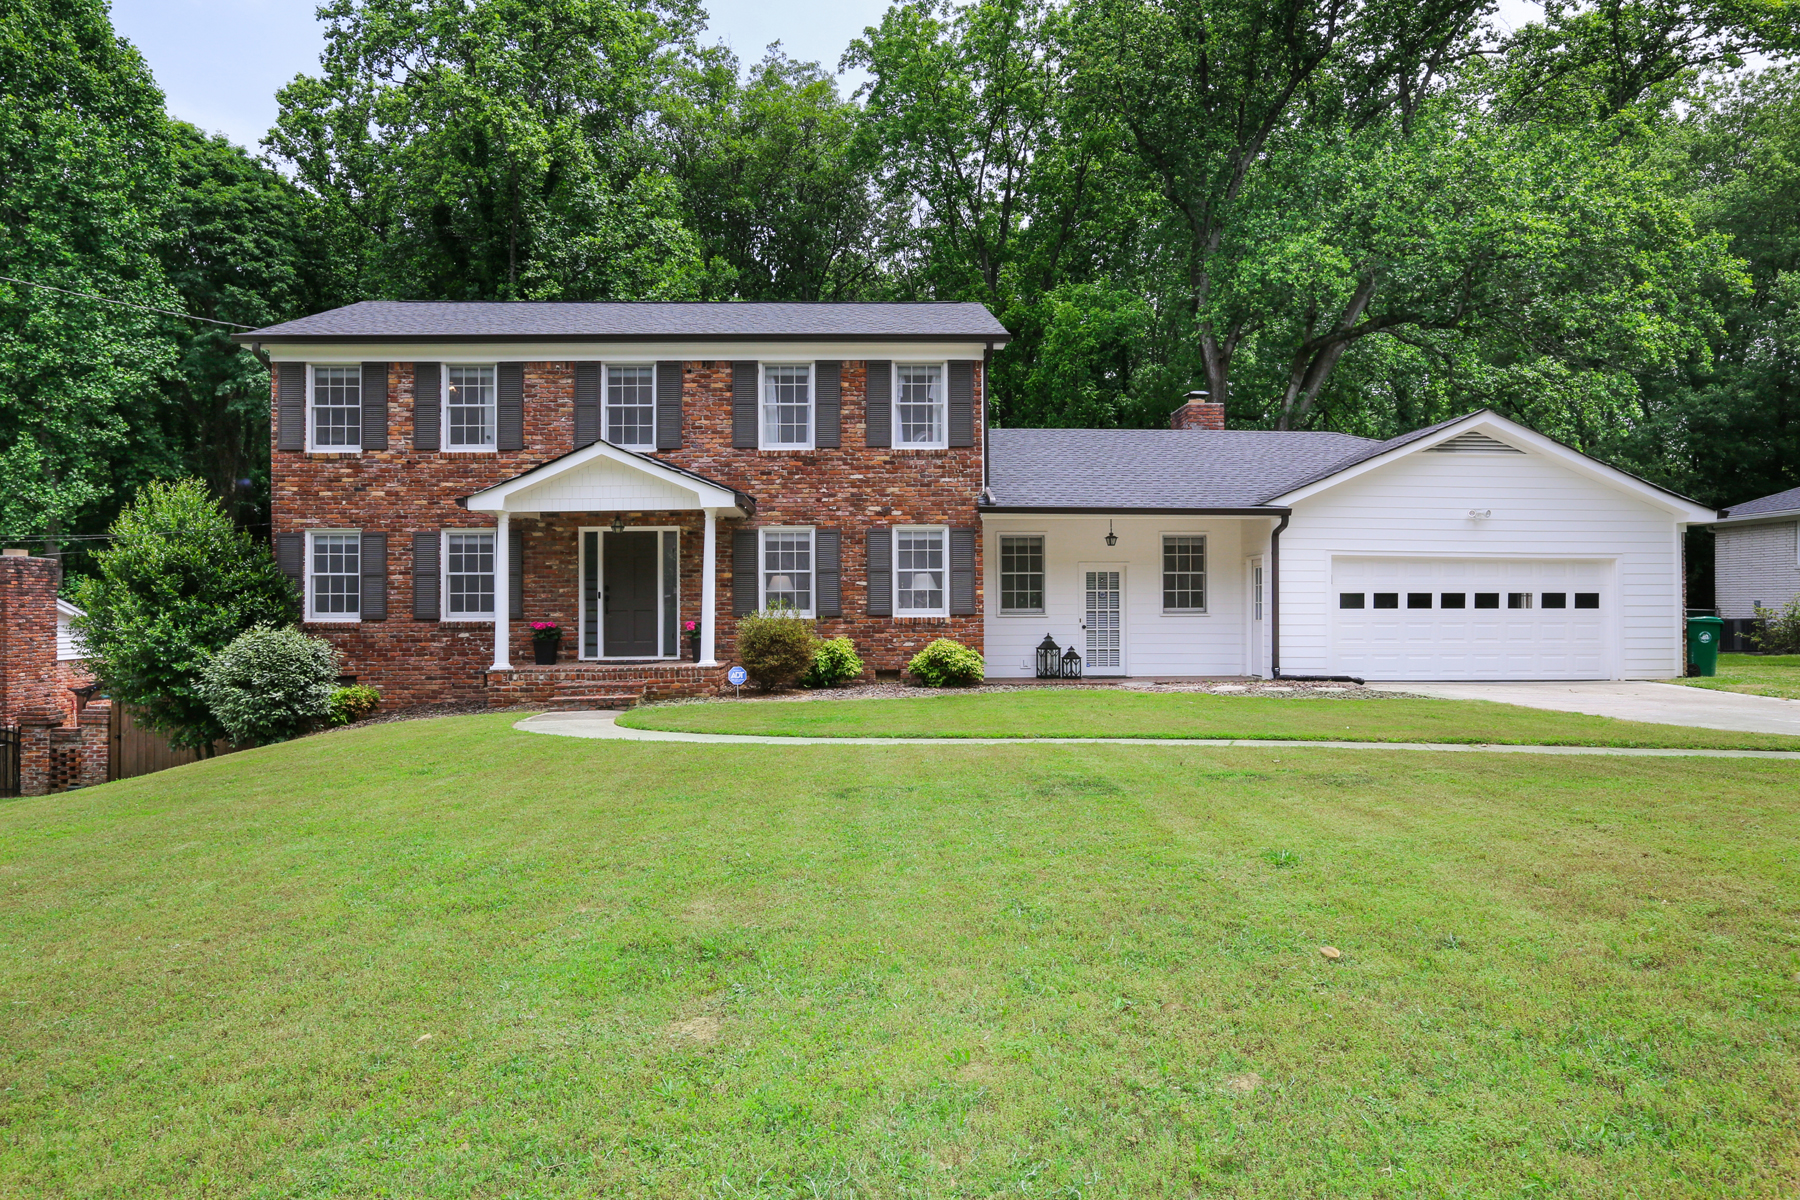 Single Family Homes for Sale at Darling Dunwoody Traditional Home 1614 Bishop Hollow Run Dunwoody, Georgia 30338 United States